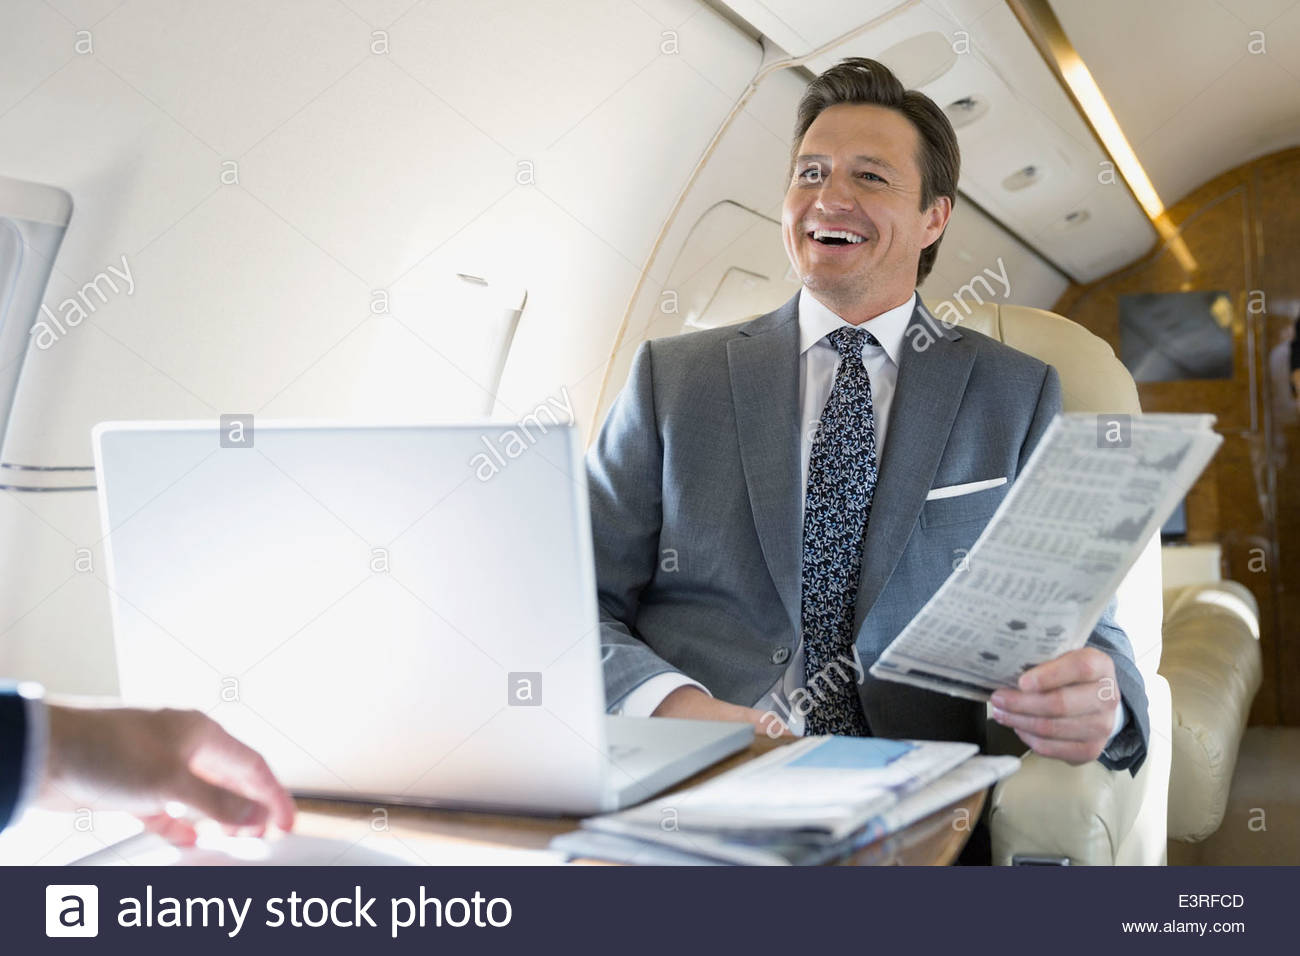 Businessman with newspaper laughing on corporate jet - Stock Image